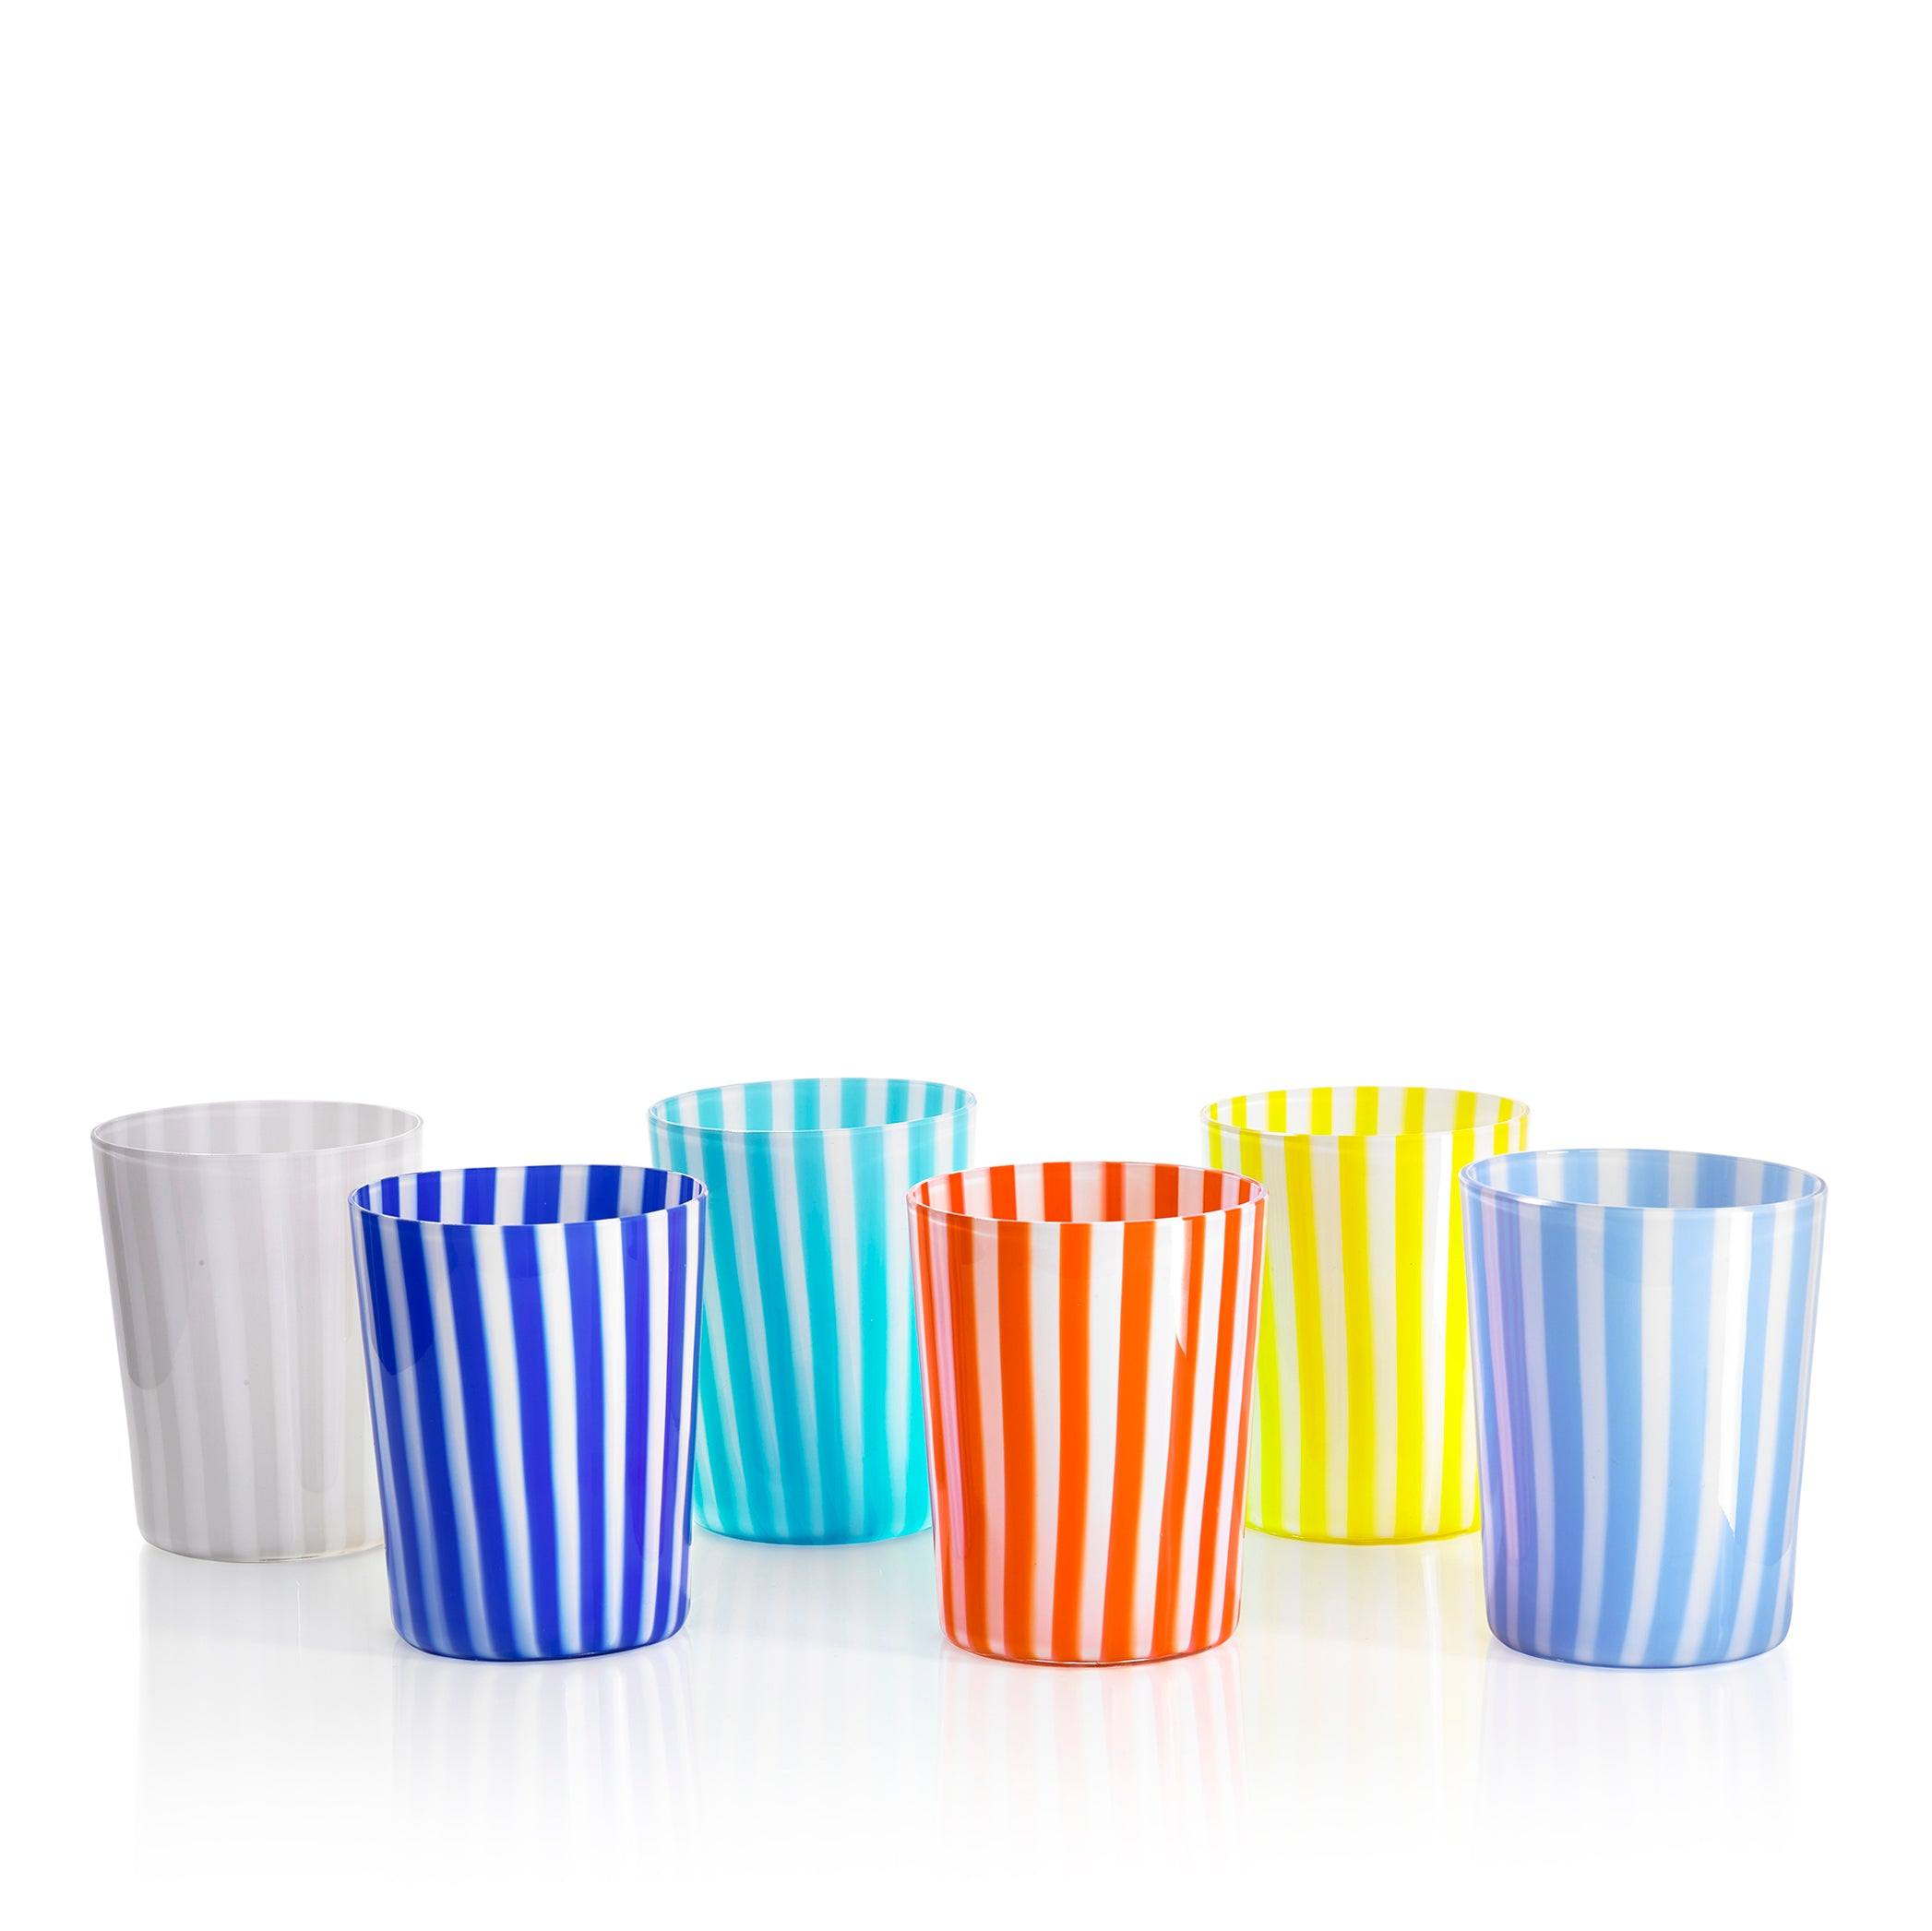 Set of Six Handblown 'Pastelli' Glass Tumblers, Designed by LPWK in Multicolour Stripe